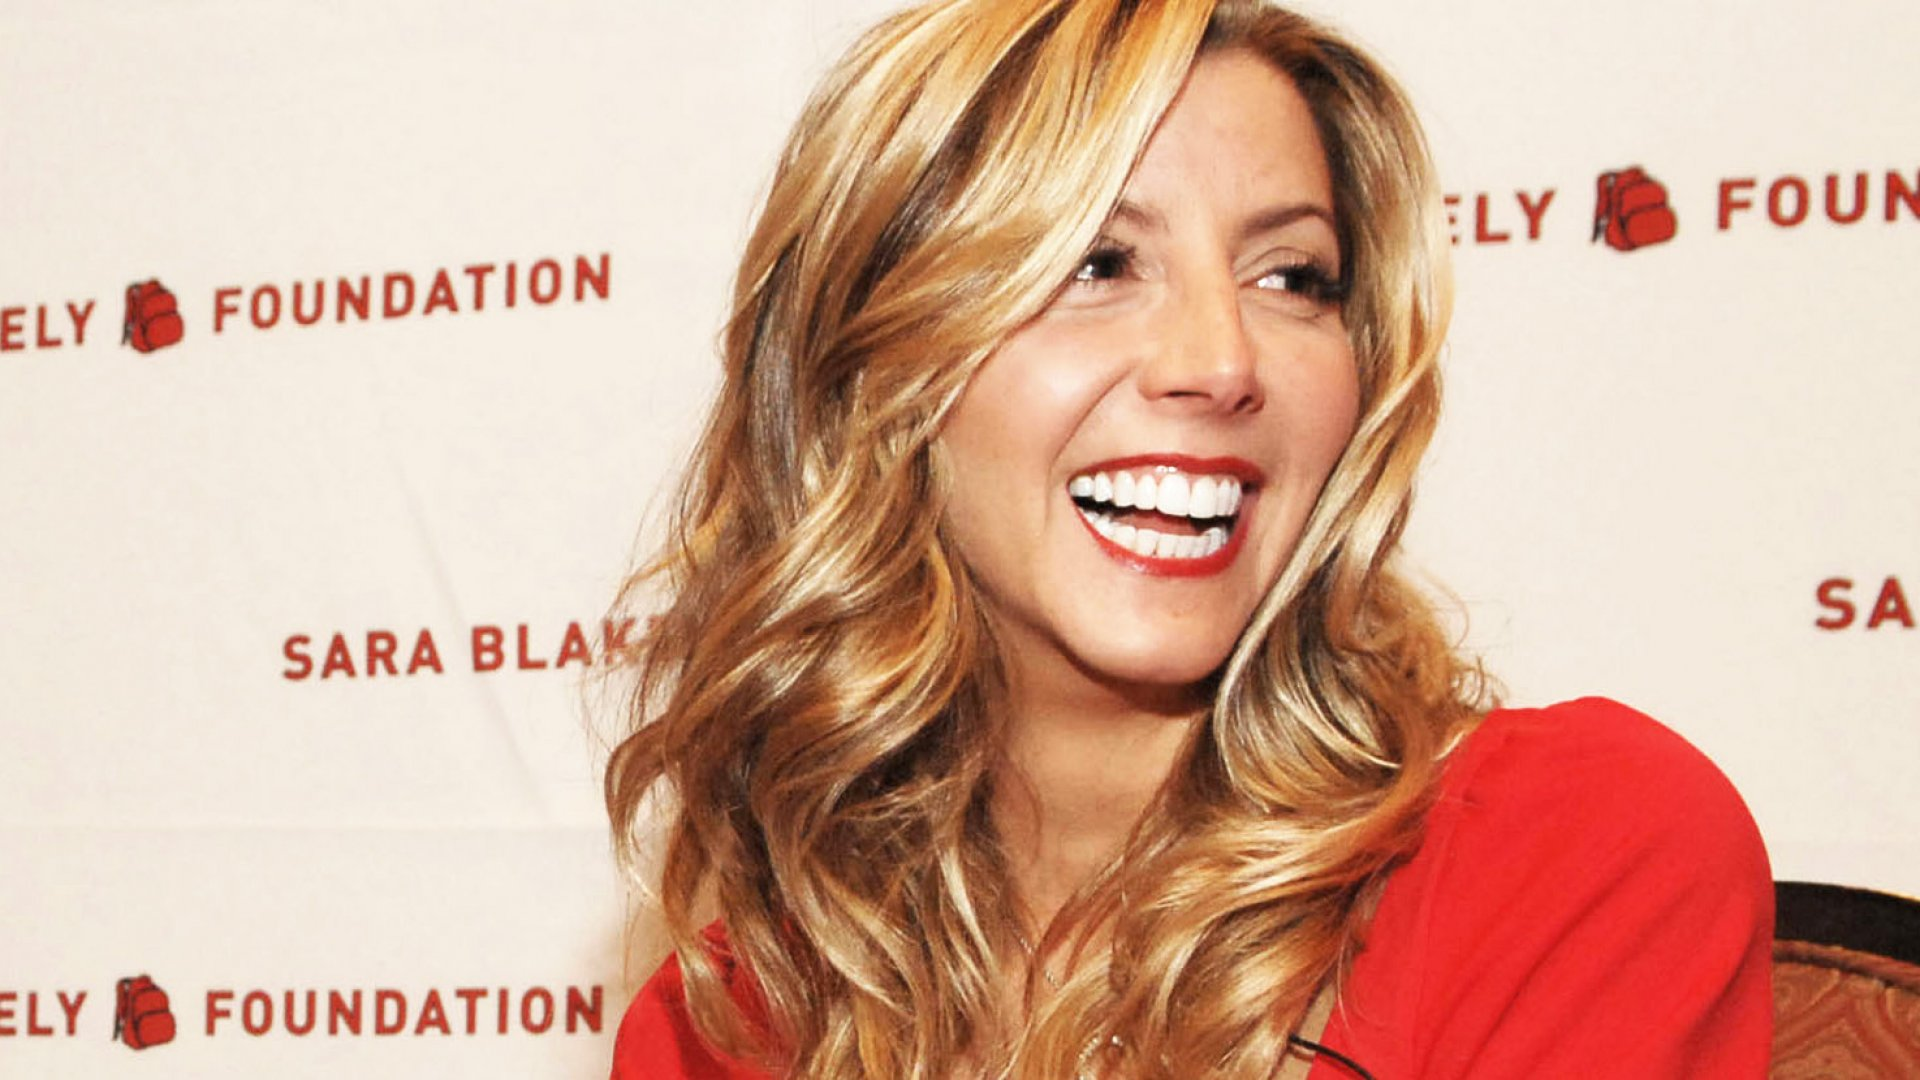 Spanx Founder Sara Blakely on How to Hire Senior Executives